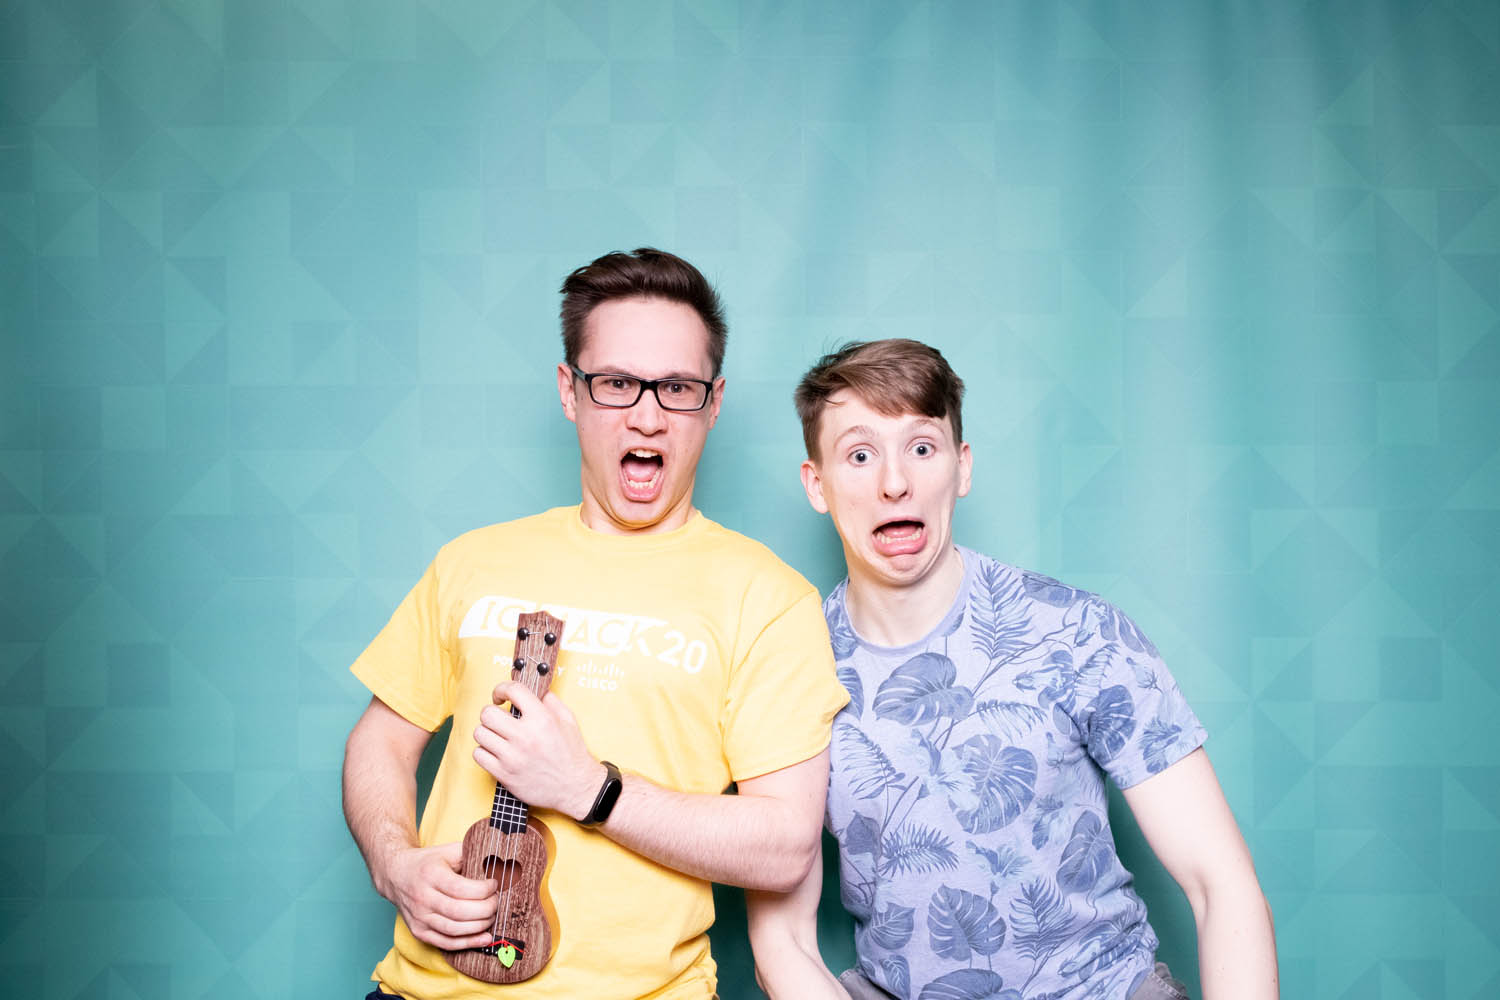 Teal photo booth backdrop